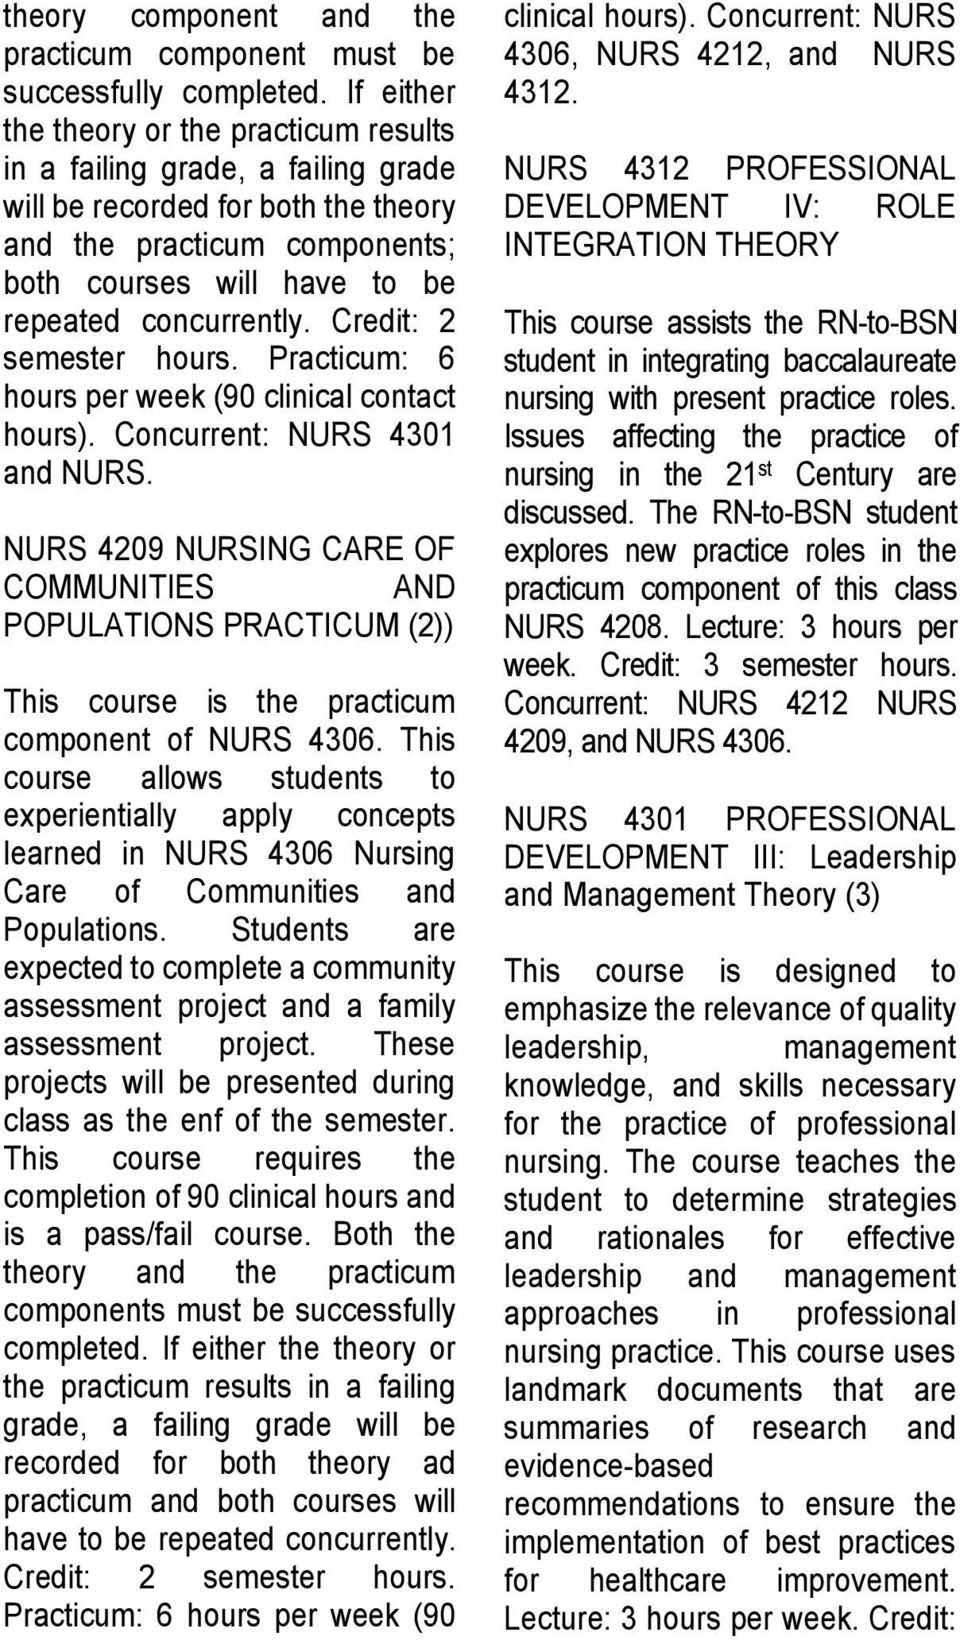 Credit: 2 semester hours. Practicum: 6 hours per week (90 clinical contact hours). Concurrent: NURS 4301 and NURS.